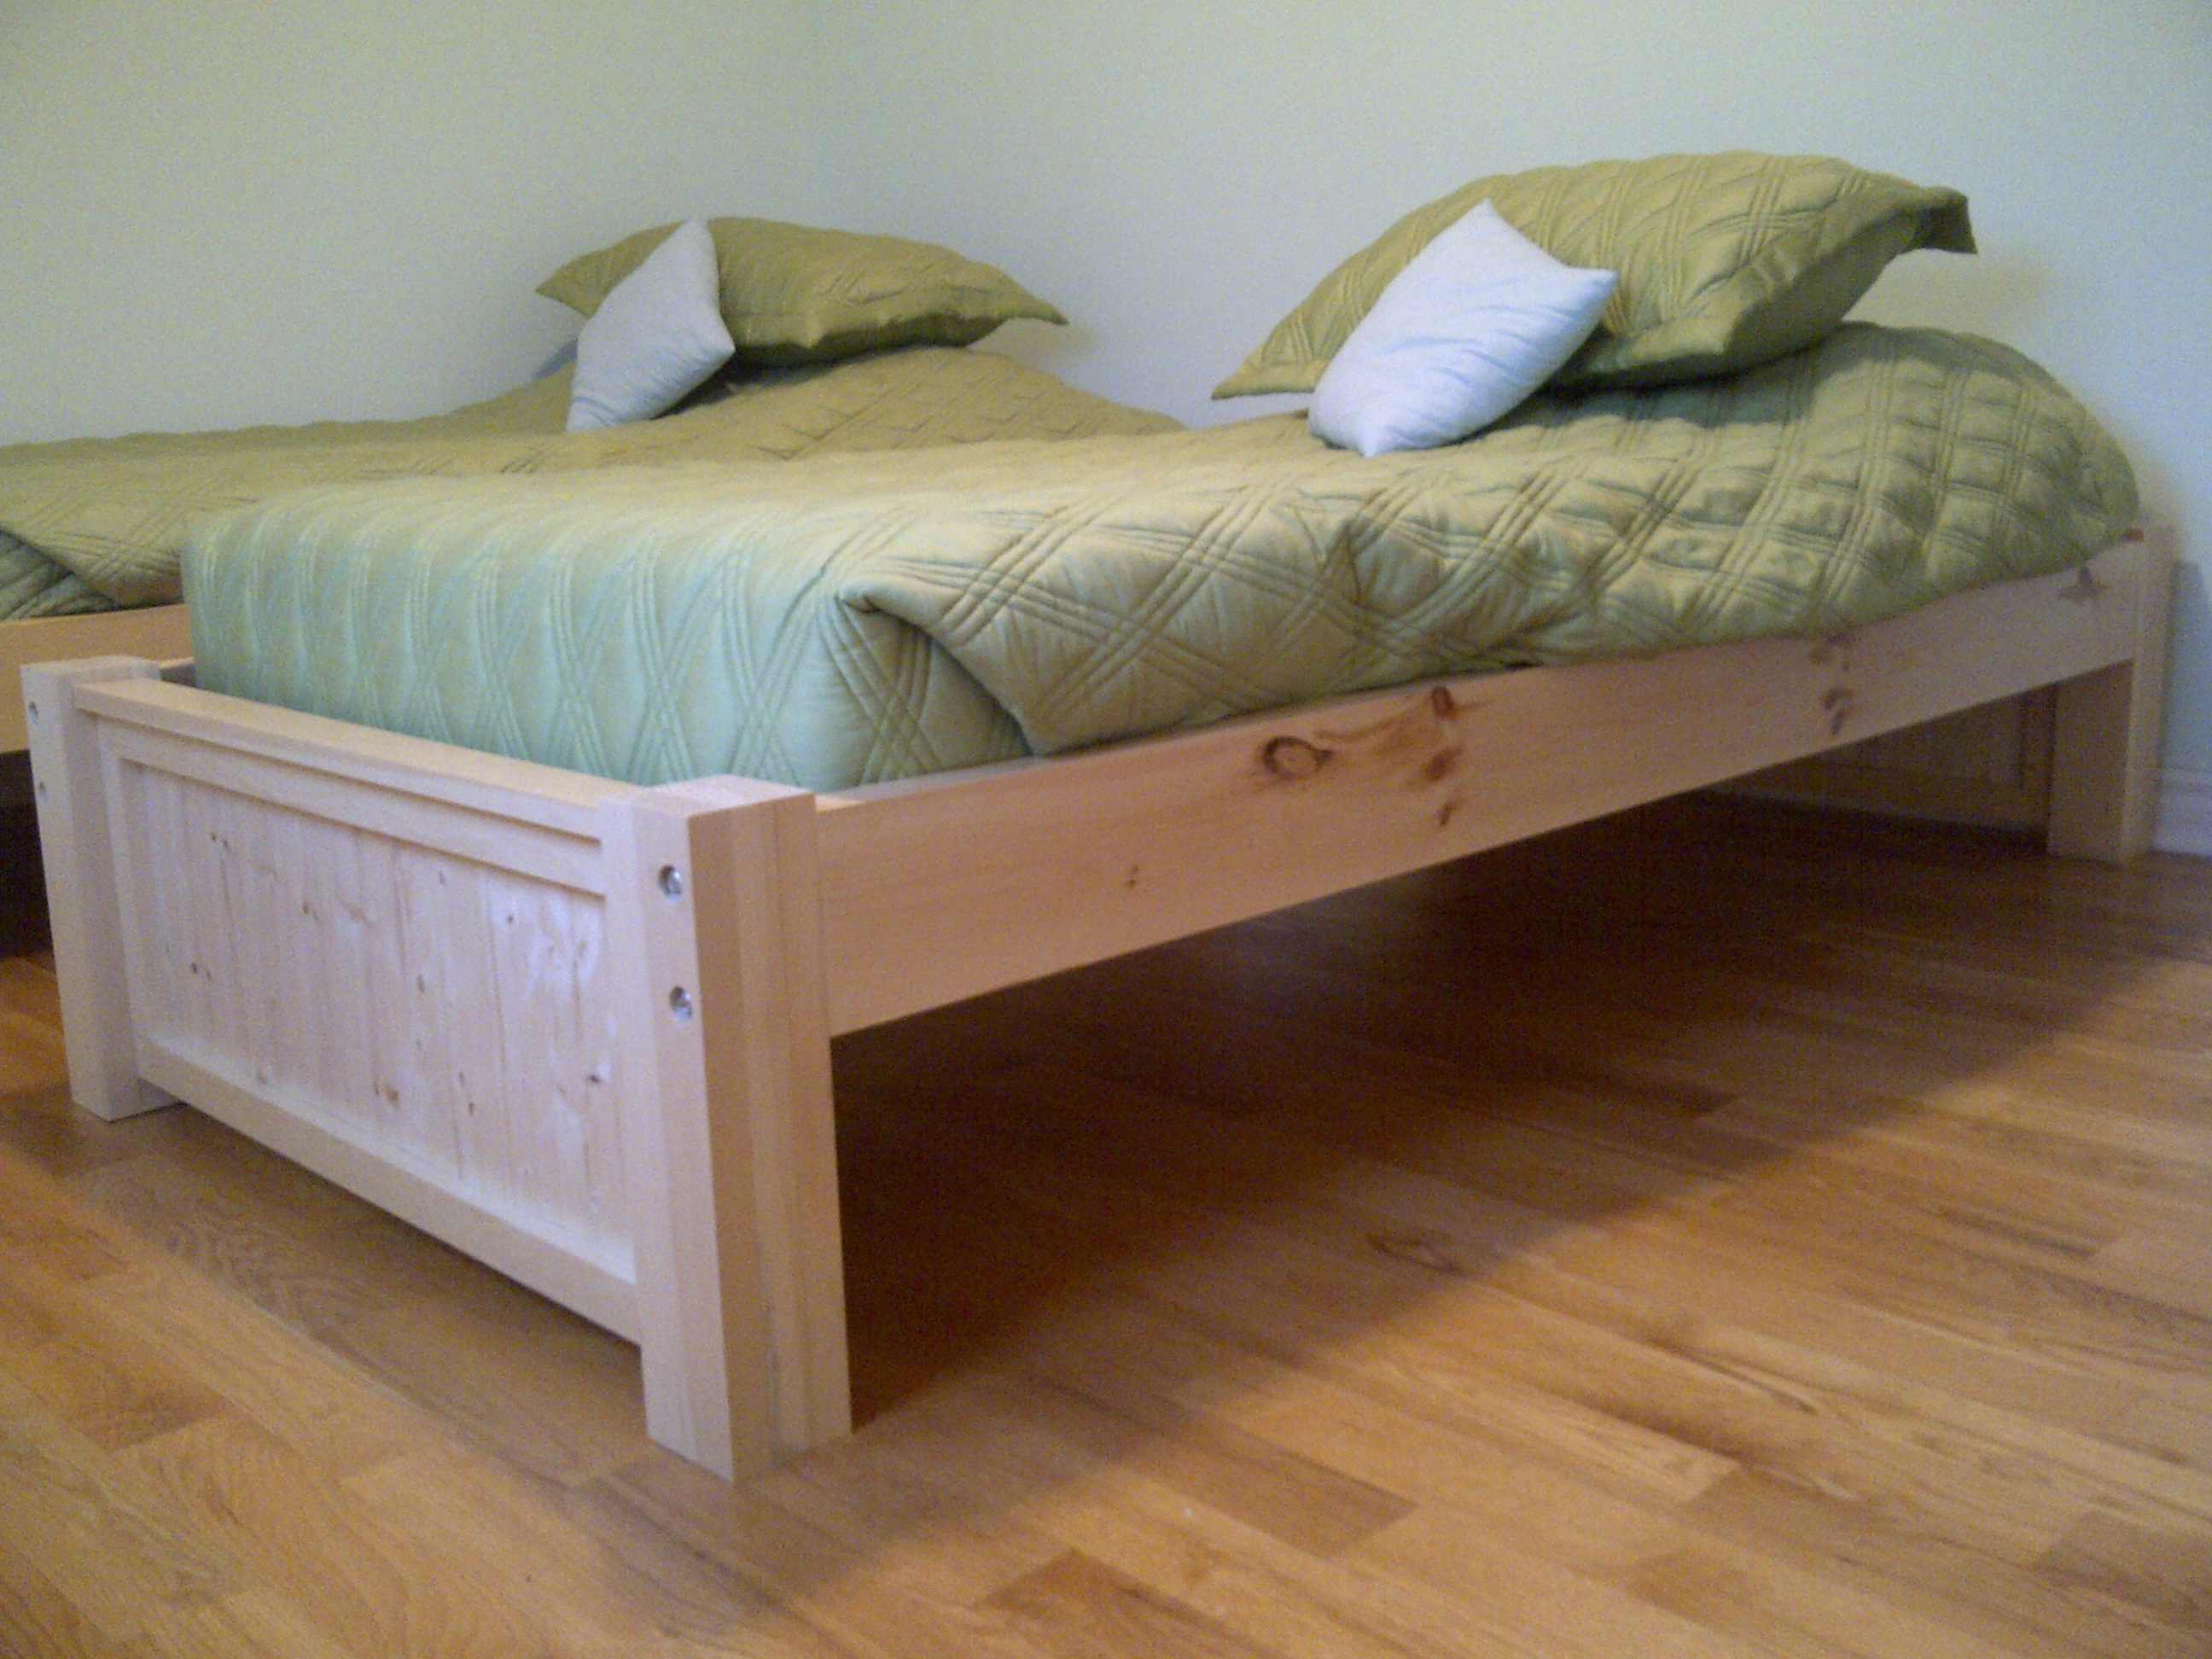 Permalink to building a platform bed frame with drawers